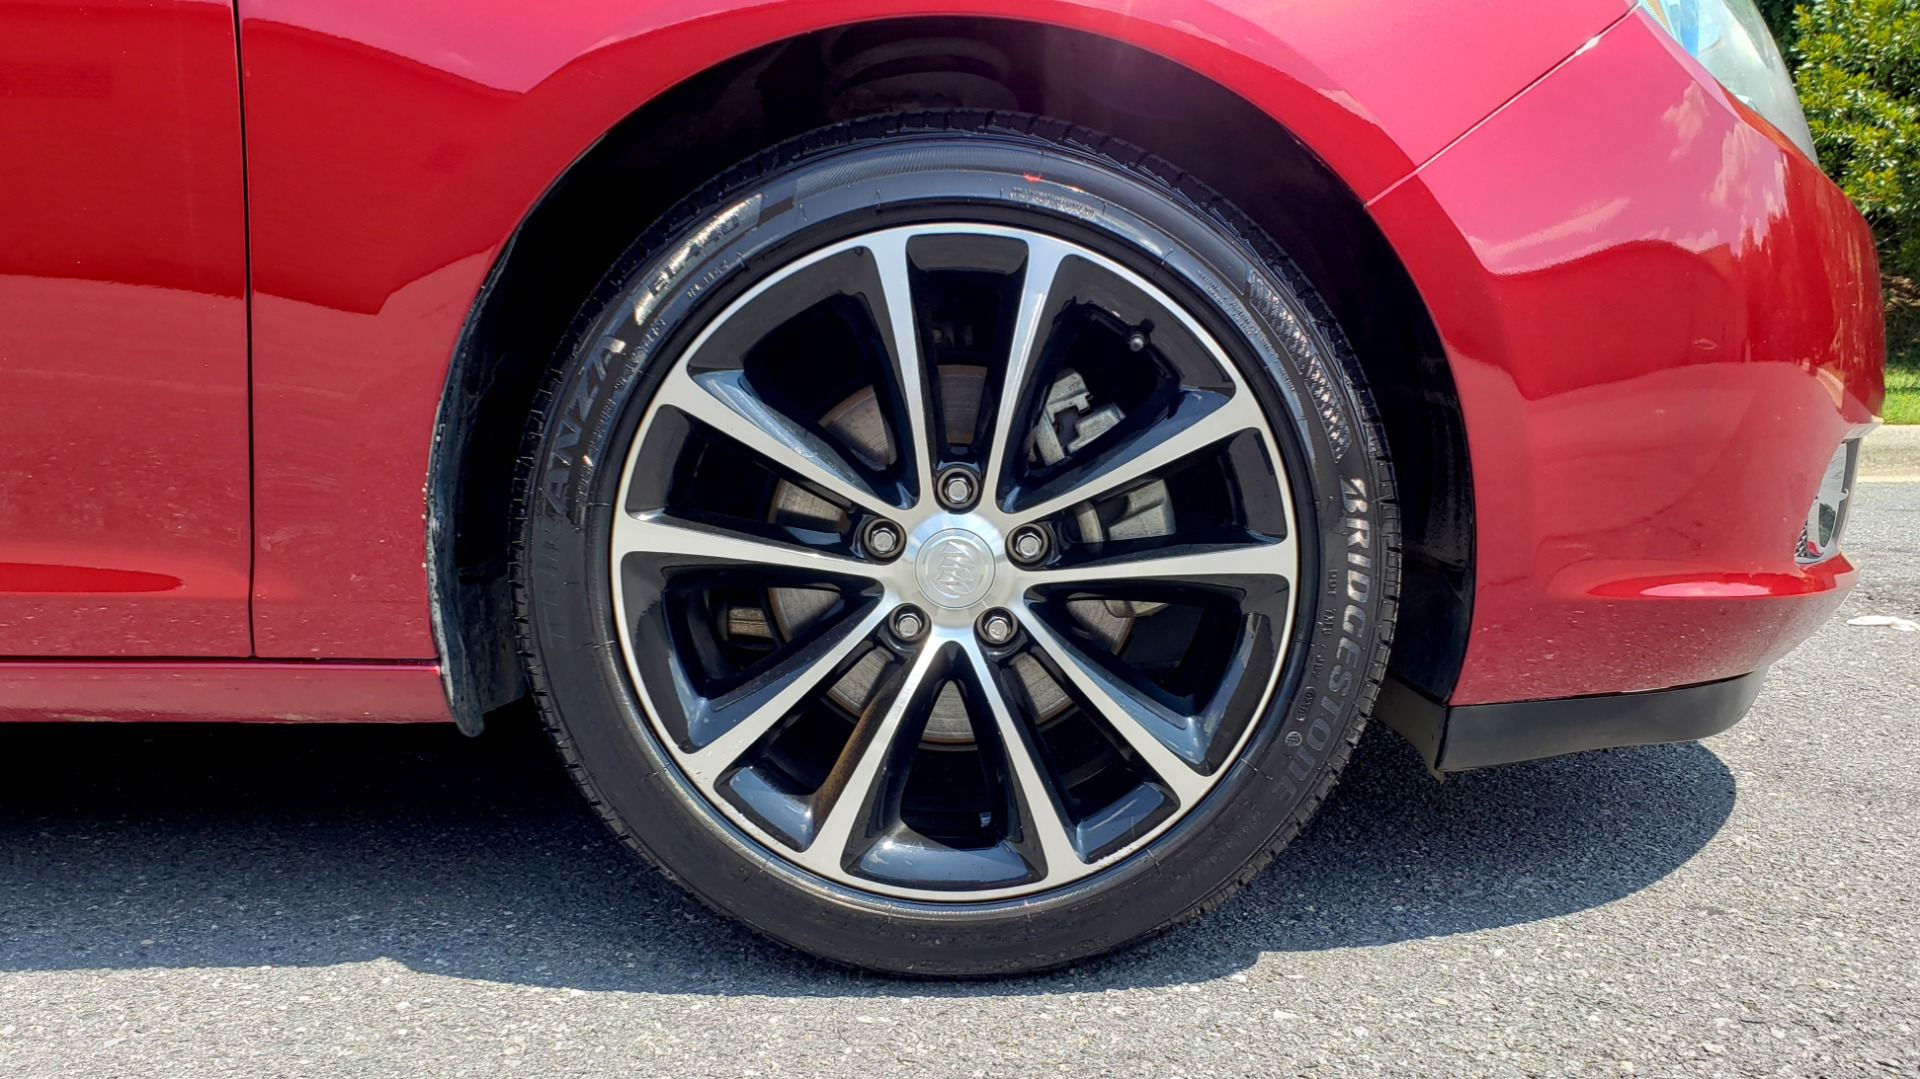 Used 2016 Buick VERANO SPORT TOURING / SUNROOF / HTD STS / 18IN WHEELS / REARVIEW for sale Sold at Formula Imports in Charlotte NC 28227 75